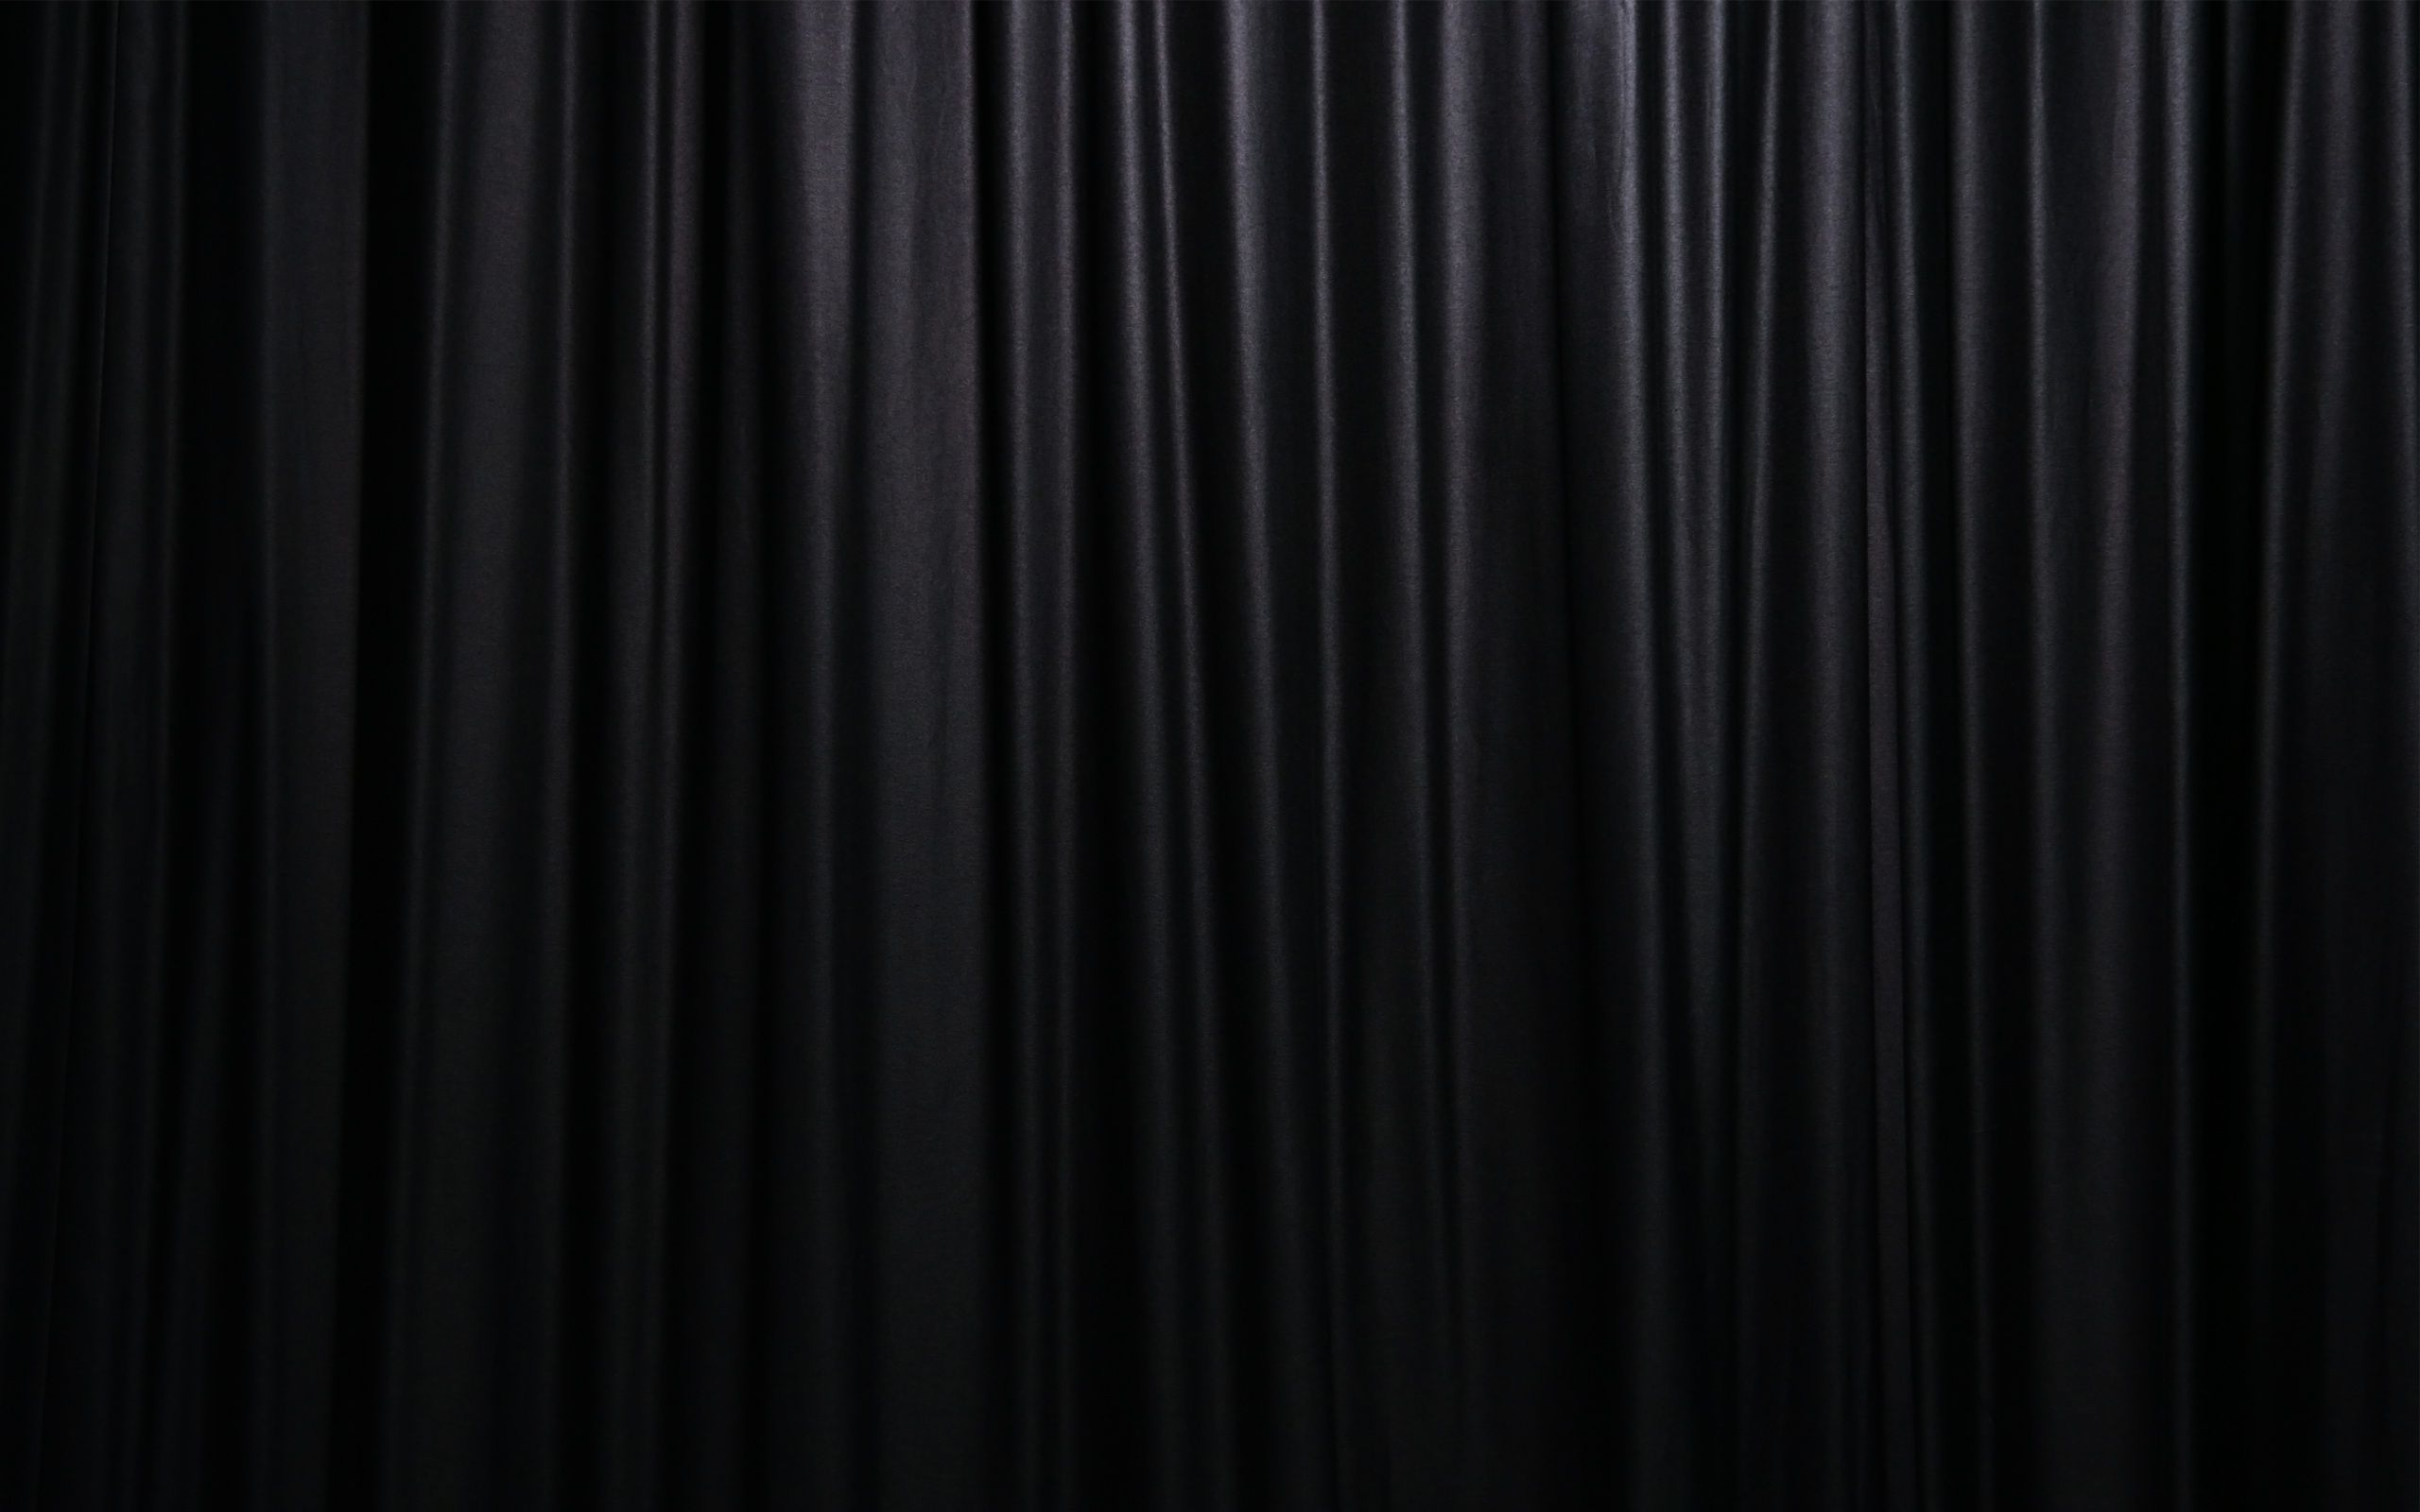 Image Result For Black Curtains Texture